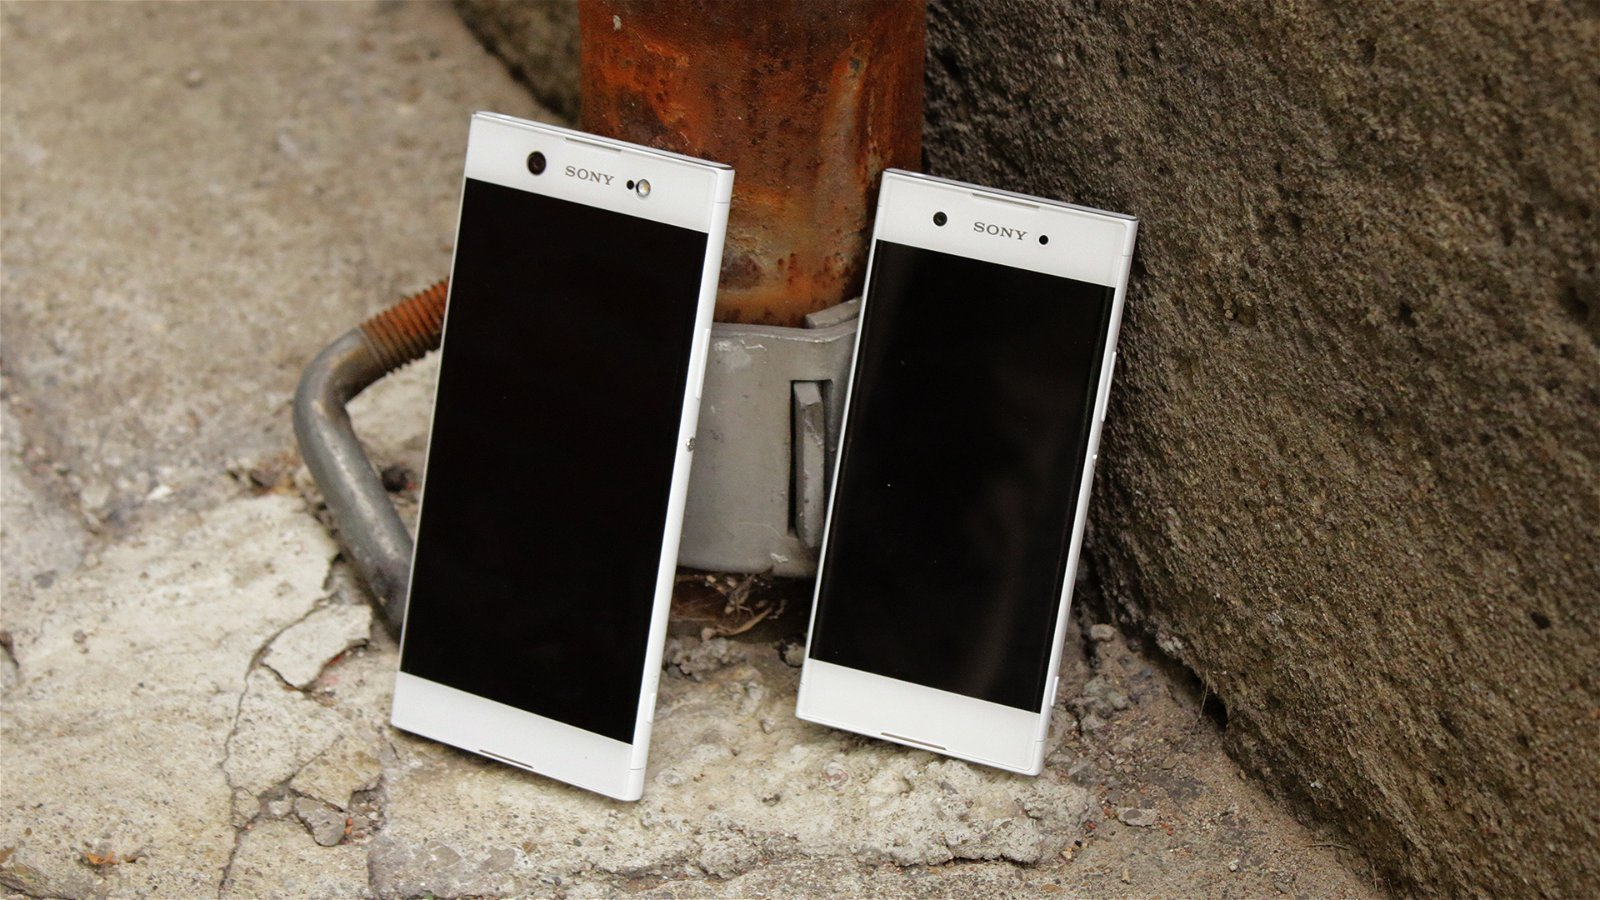 Title: Sony Xperia Xa1 And Xa1 Ultra (Smartphone) Review – Far From The Best Experience 4